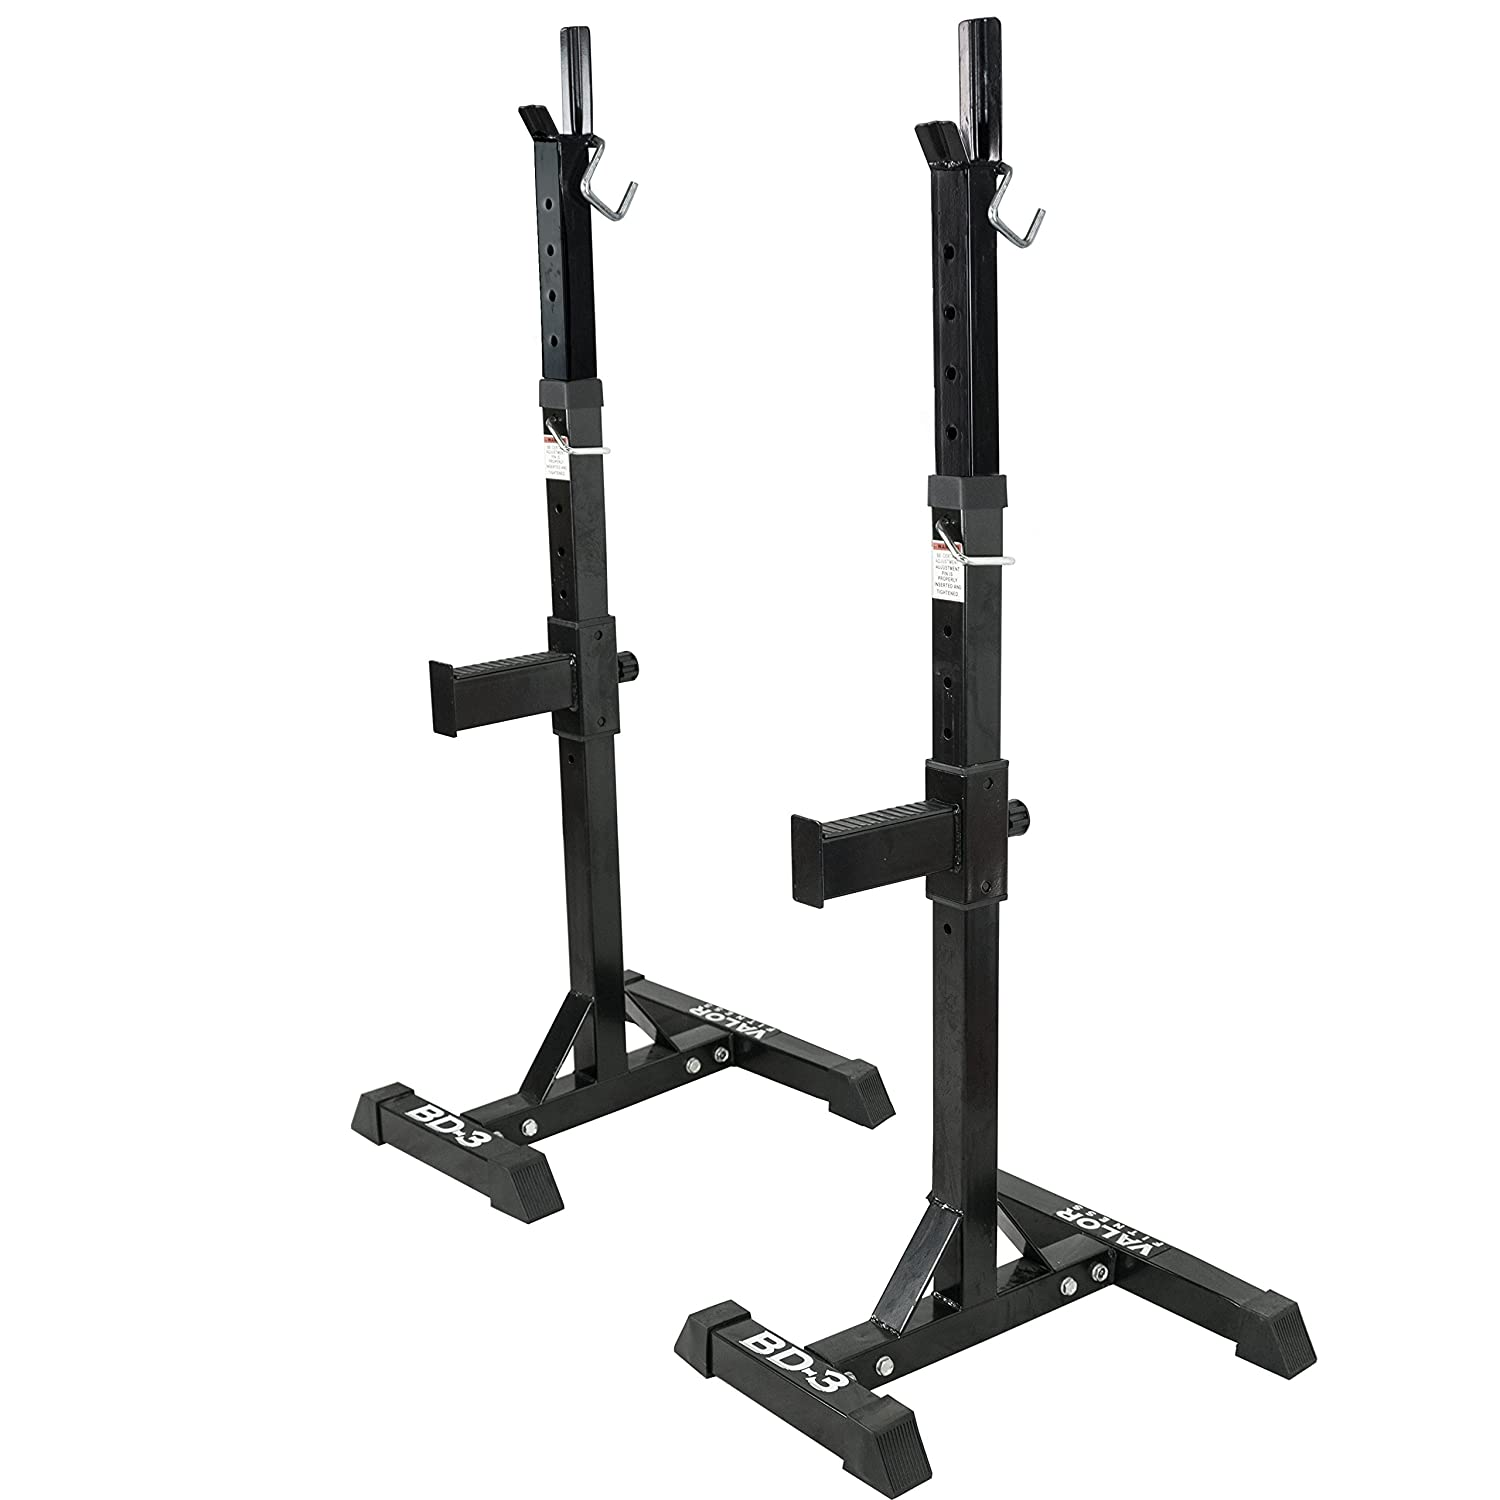 amazon com valor fitness bd 3 squat stand home gyms sportsamazon com valor fitness bd 3 squat stand home gyms sports \u0026 outdoors